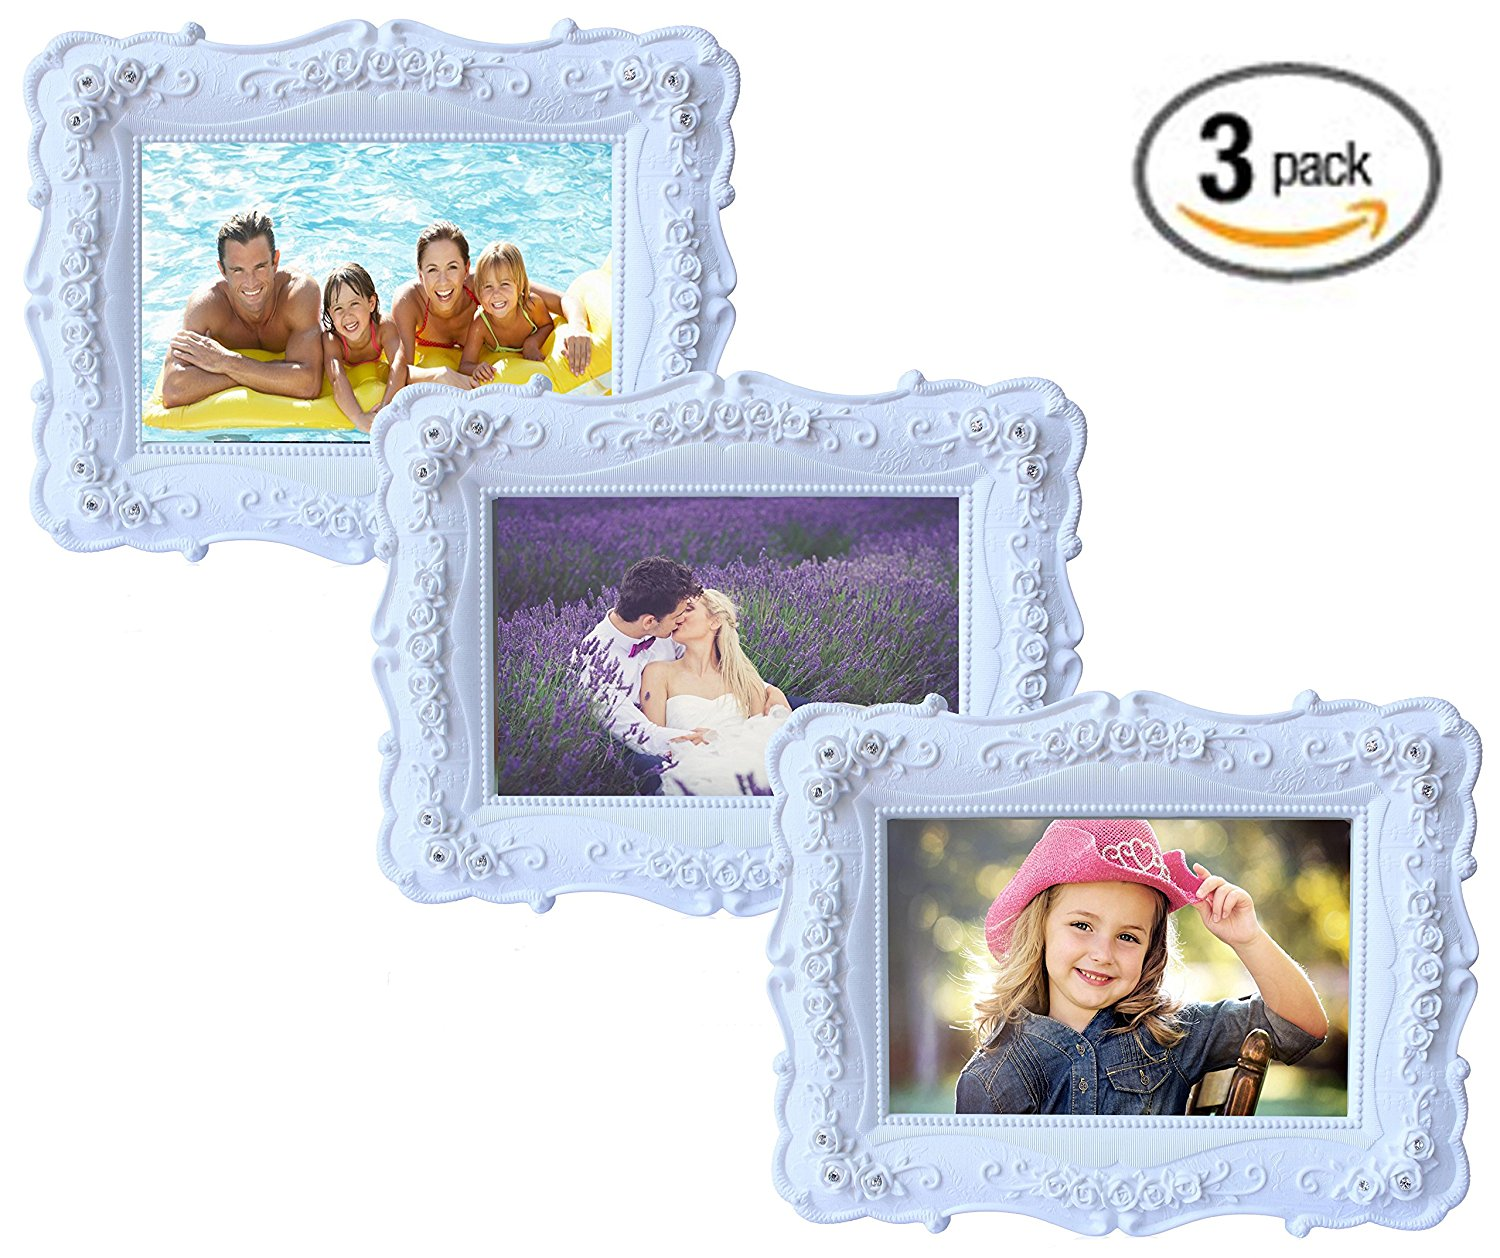 "Olivery Victorian Inspired Flower Photo Frame - 4"" X 6"" Easel Soft Velvet Back Floral Picture Frames - Hand-painted Resin & Glass Home Decor - Great Gift Idea, Wedding Gift & More (3 Packs)"